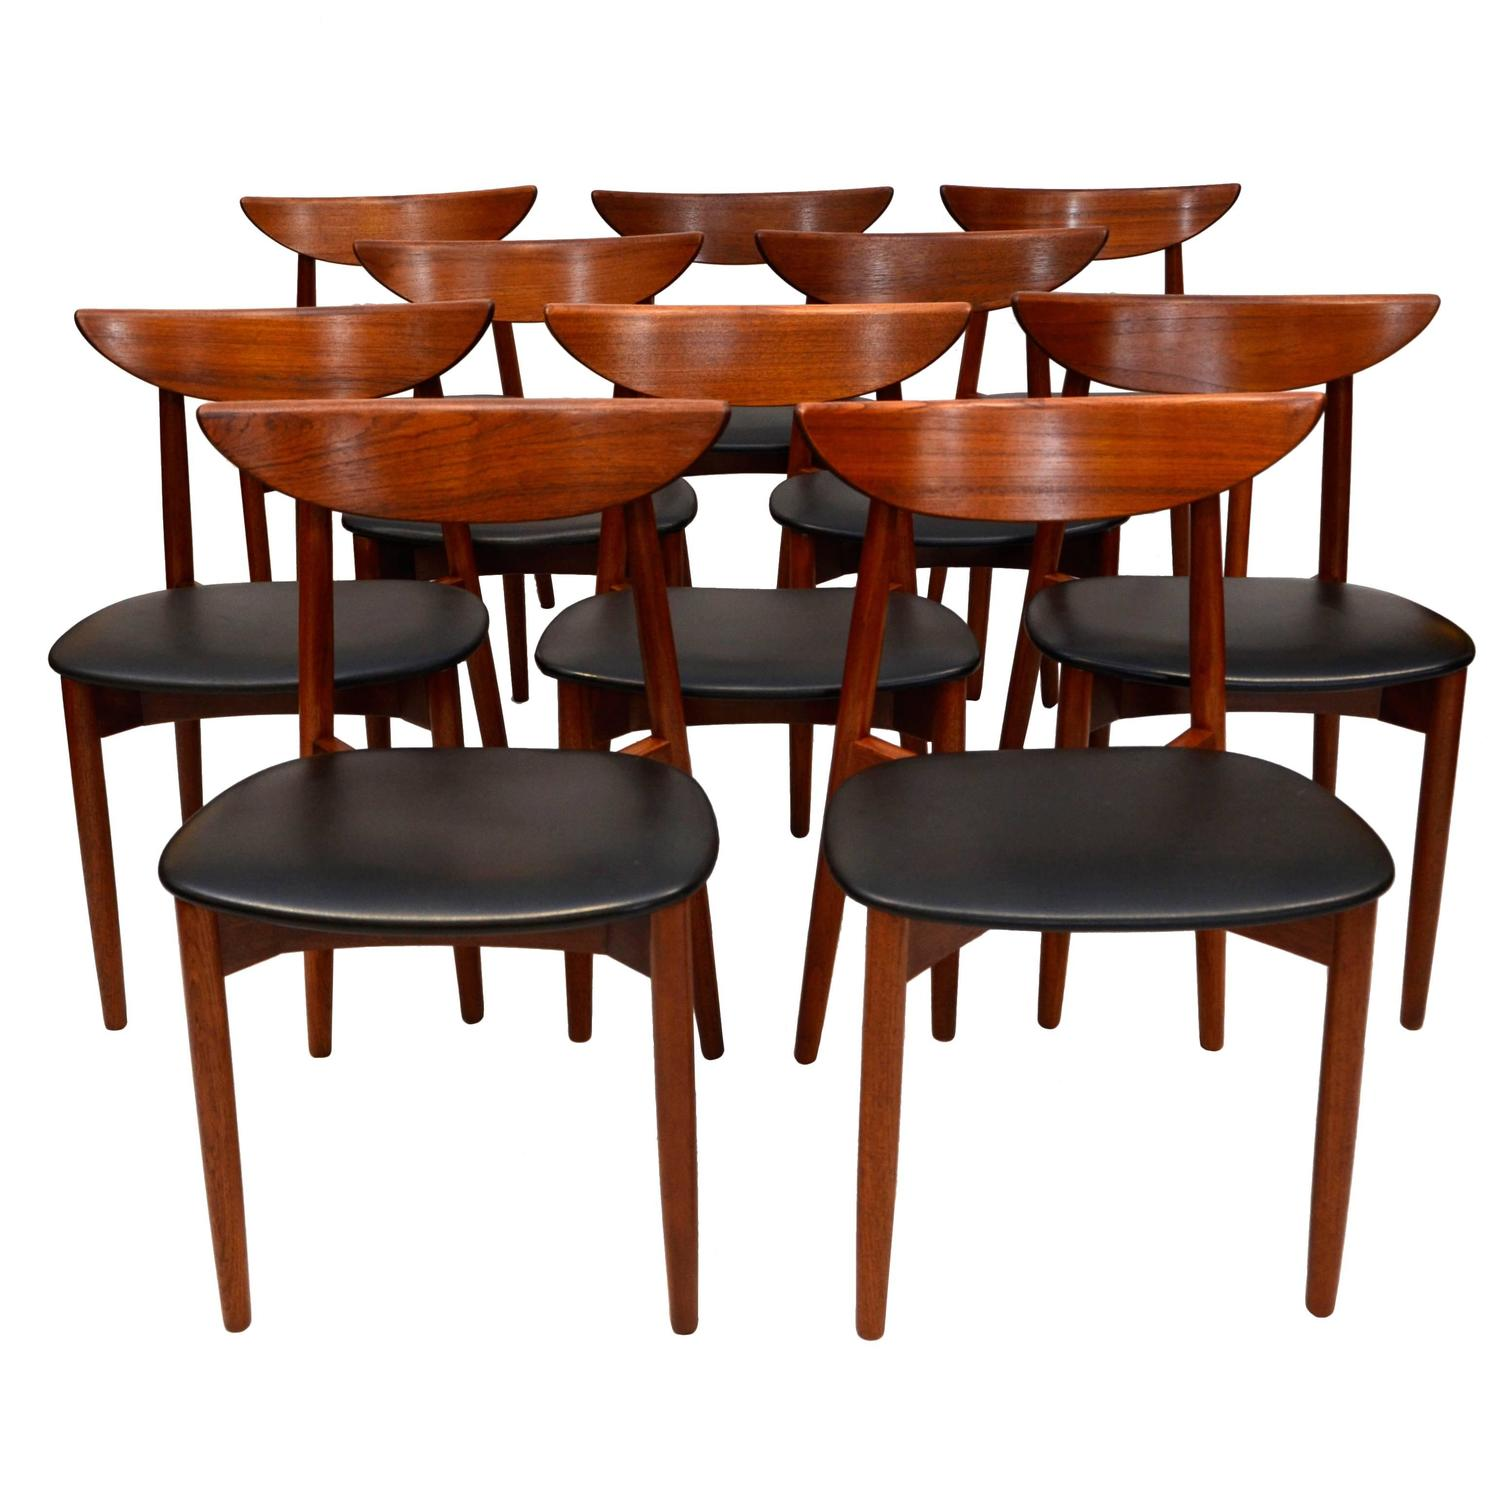 Set Of Ten Teak Dining Chairs Harry Ostergaard For Moreddi For Sale At 1stdibs